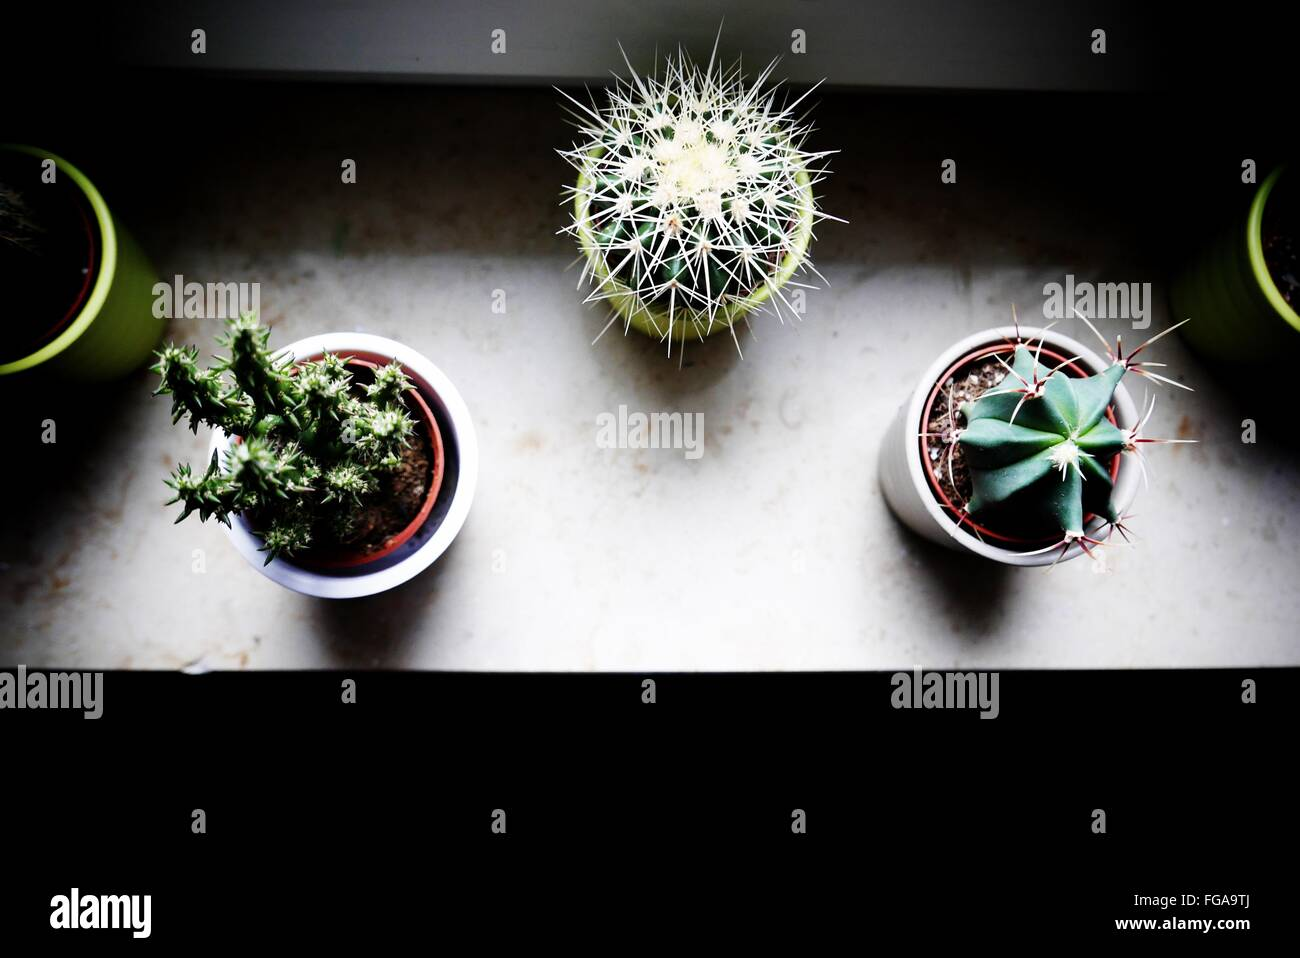 High Angle View Of Potted Plants On Window Sill At Home - Stock Image